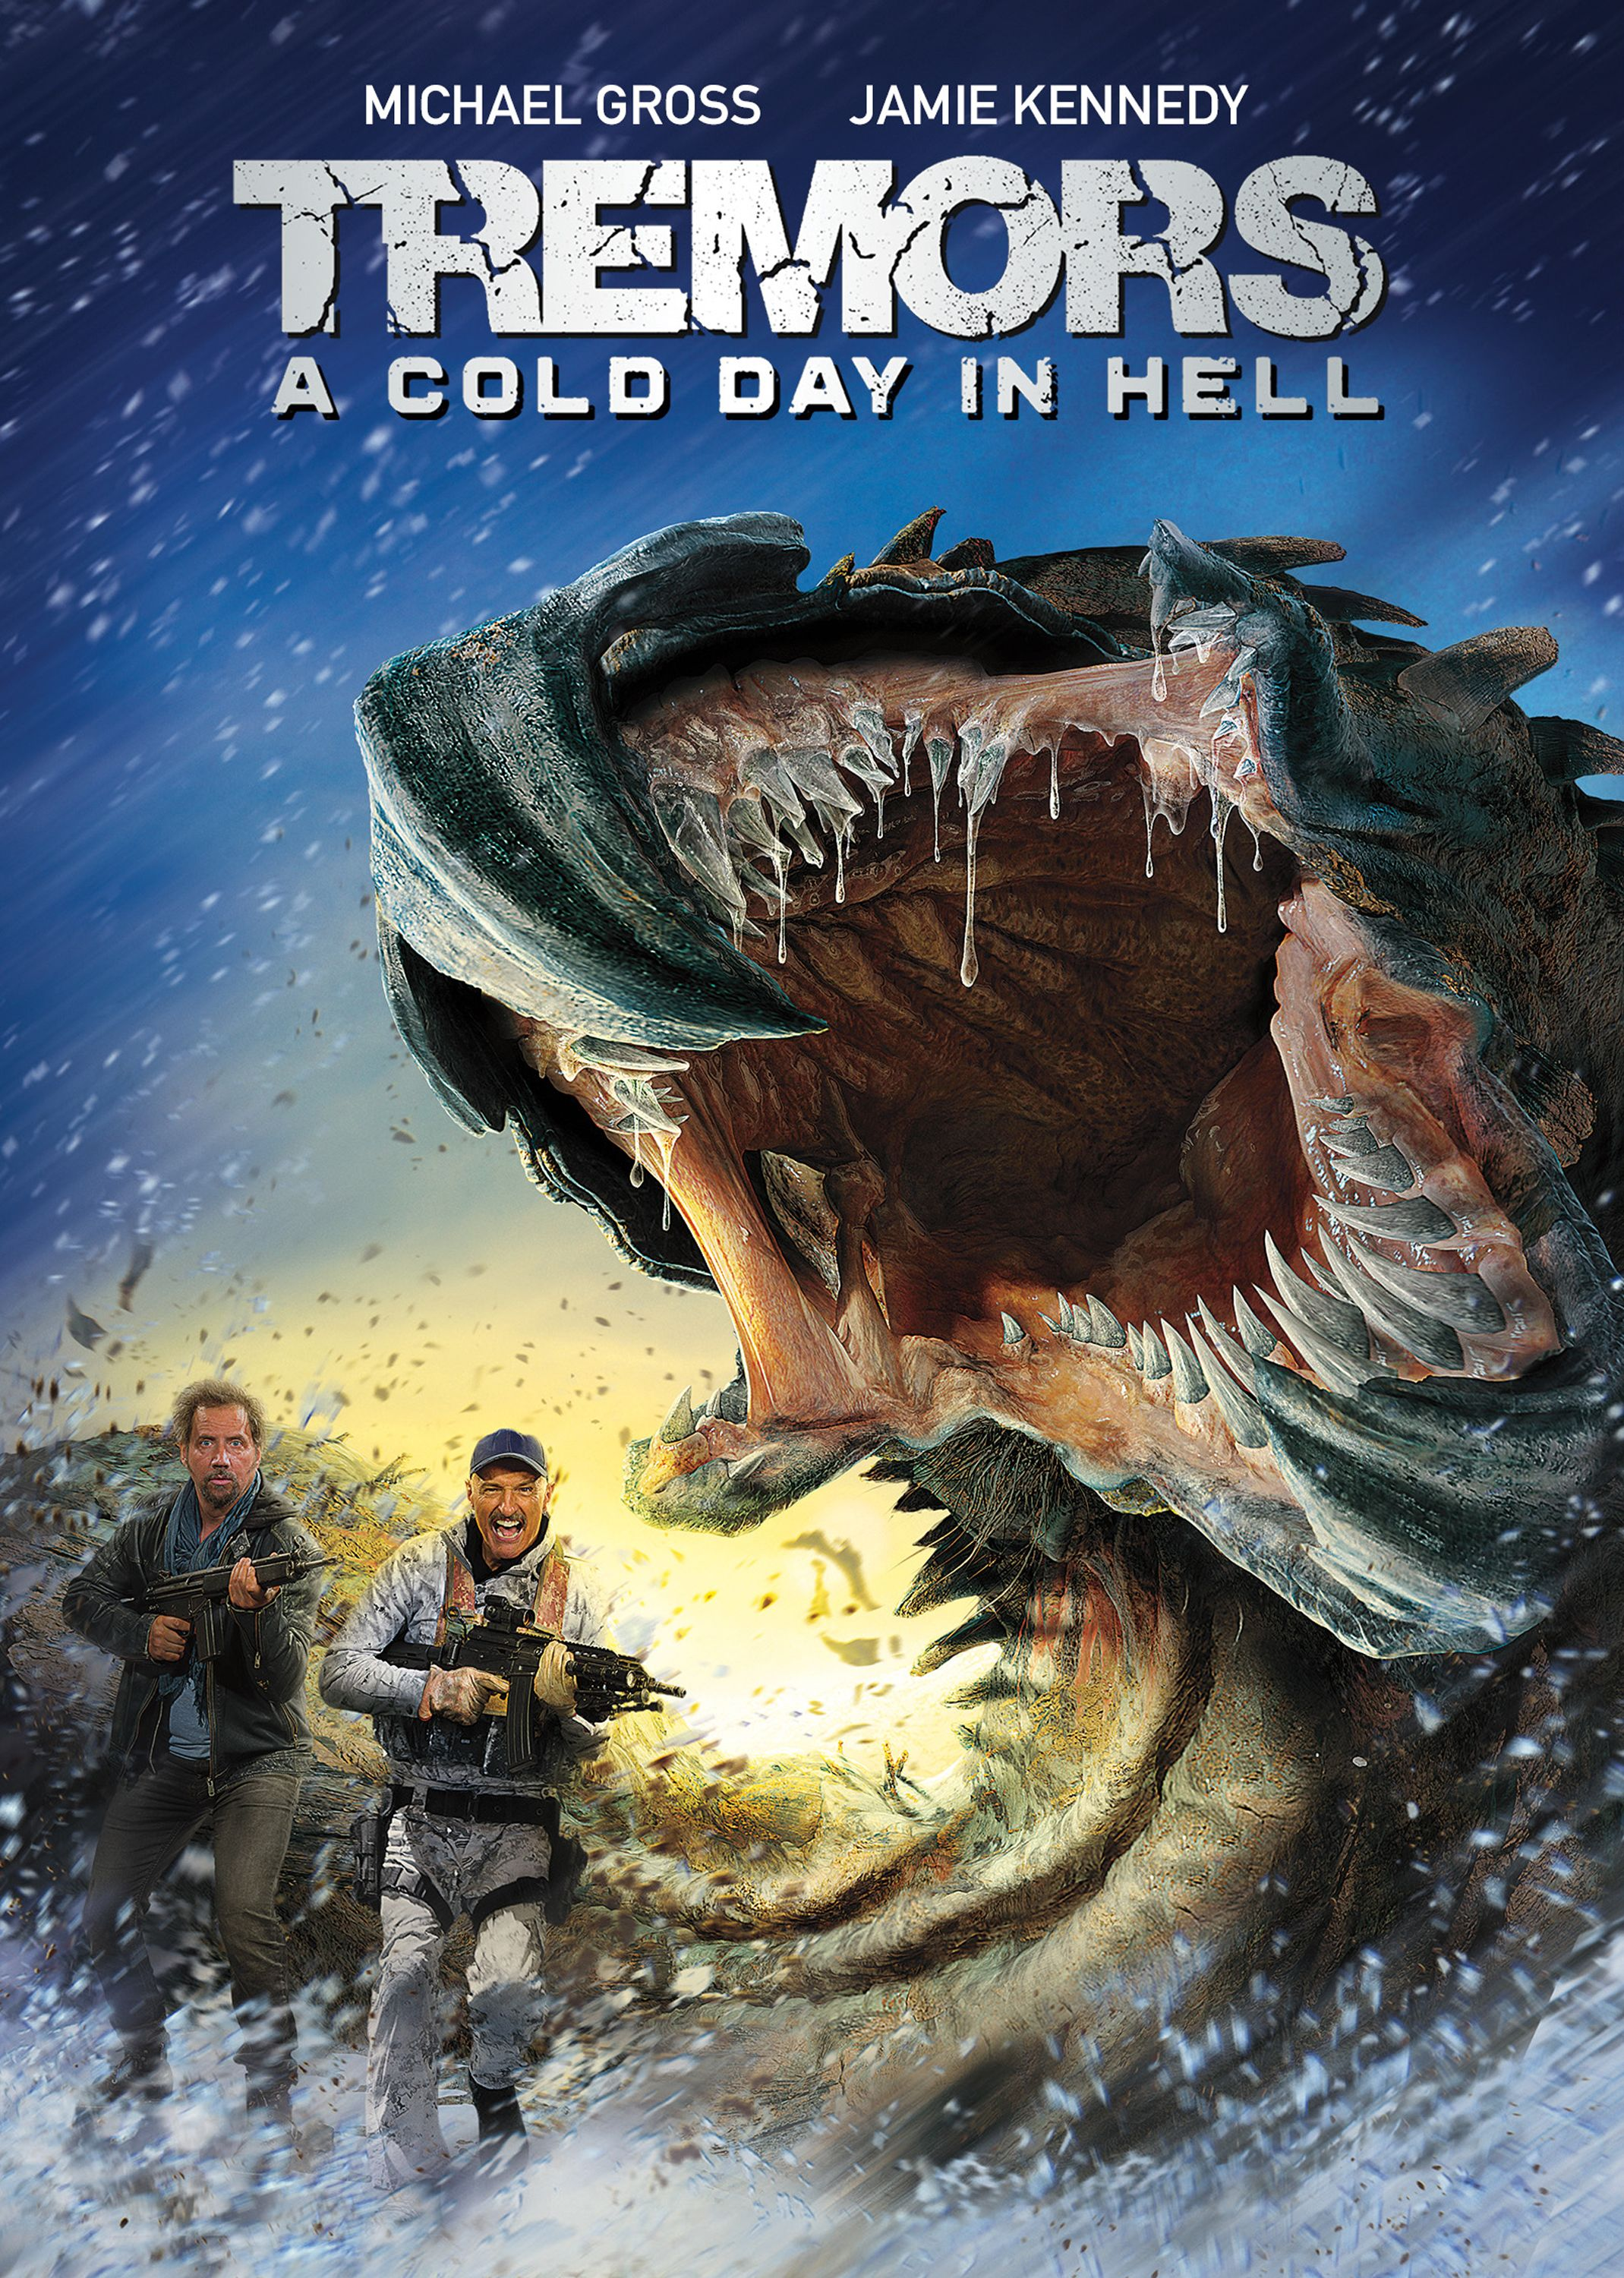 Tremors 6 A Cold Day in Hell - movie trailer: https://teaser